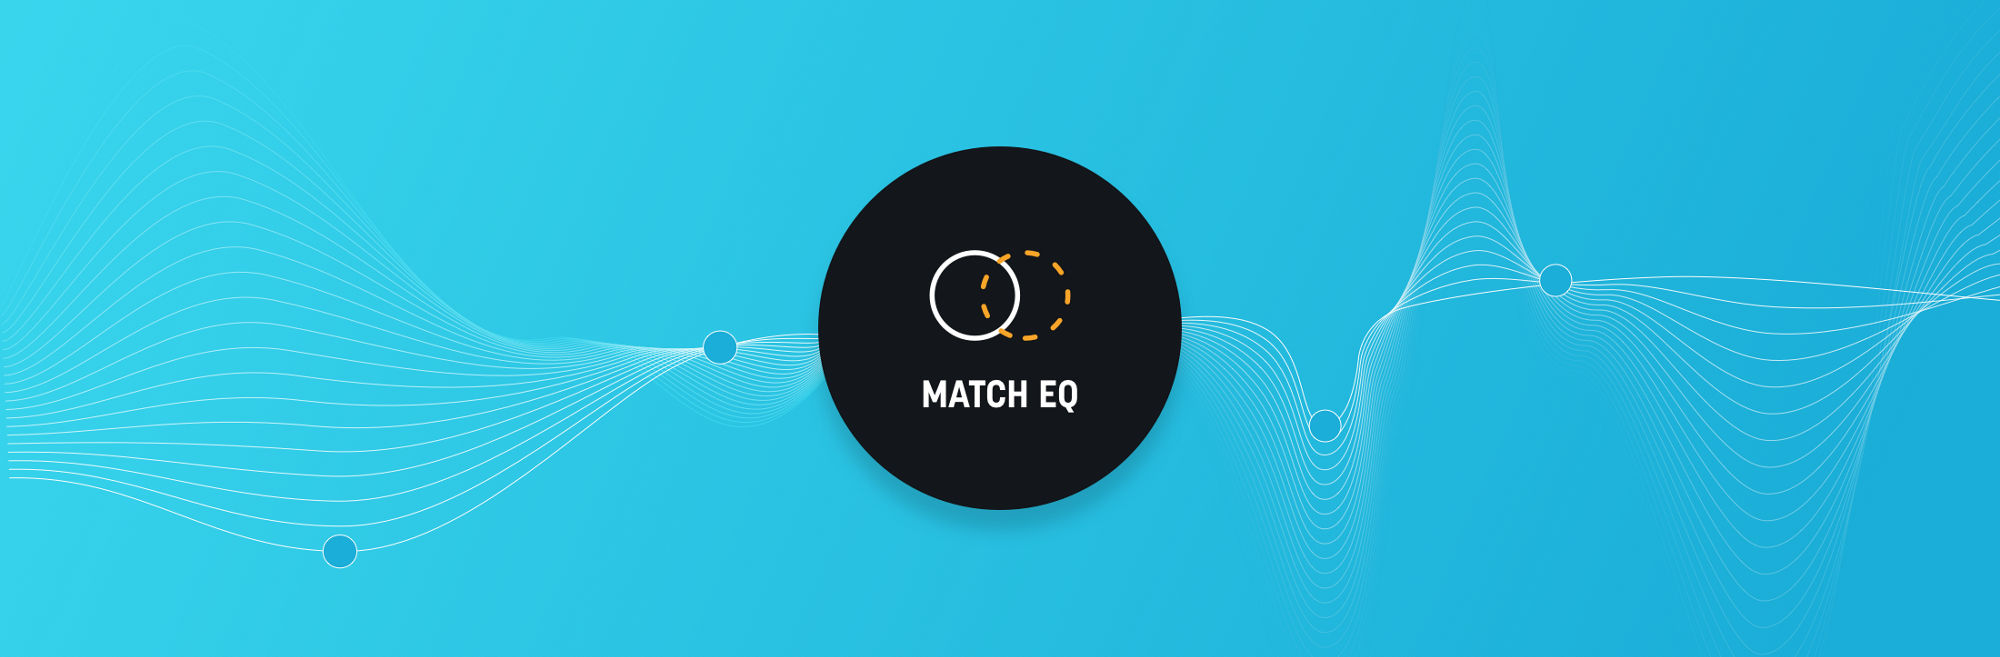 How to Use Match EQ in Ozone 9